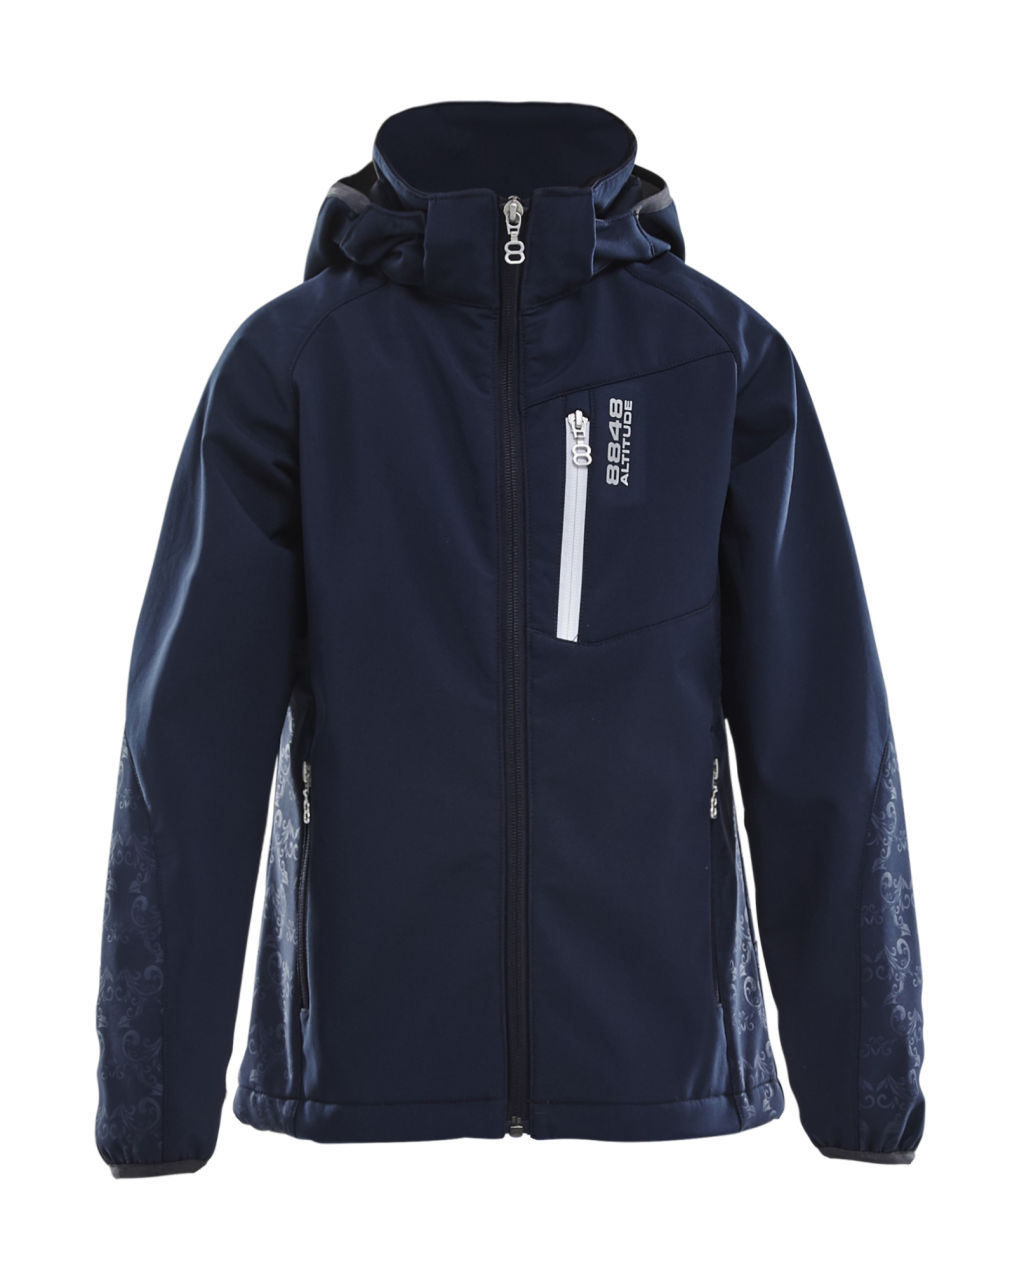 8848 Altitude Castle Jacket Jr